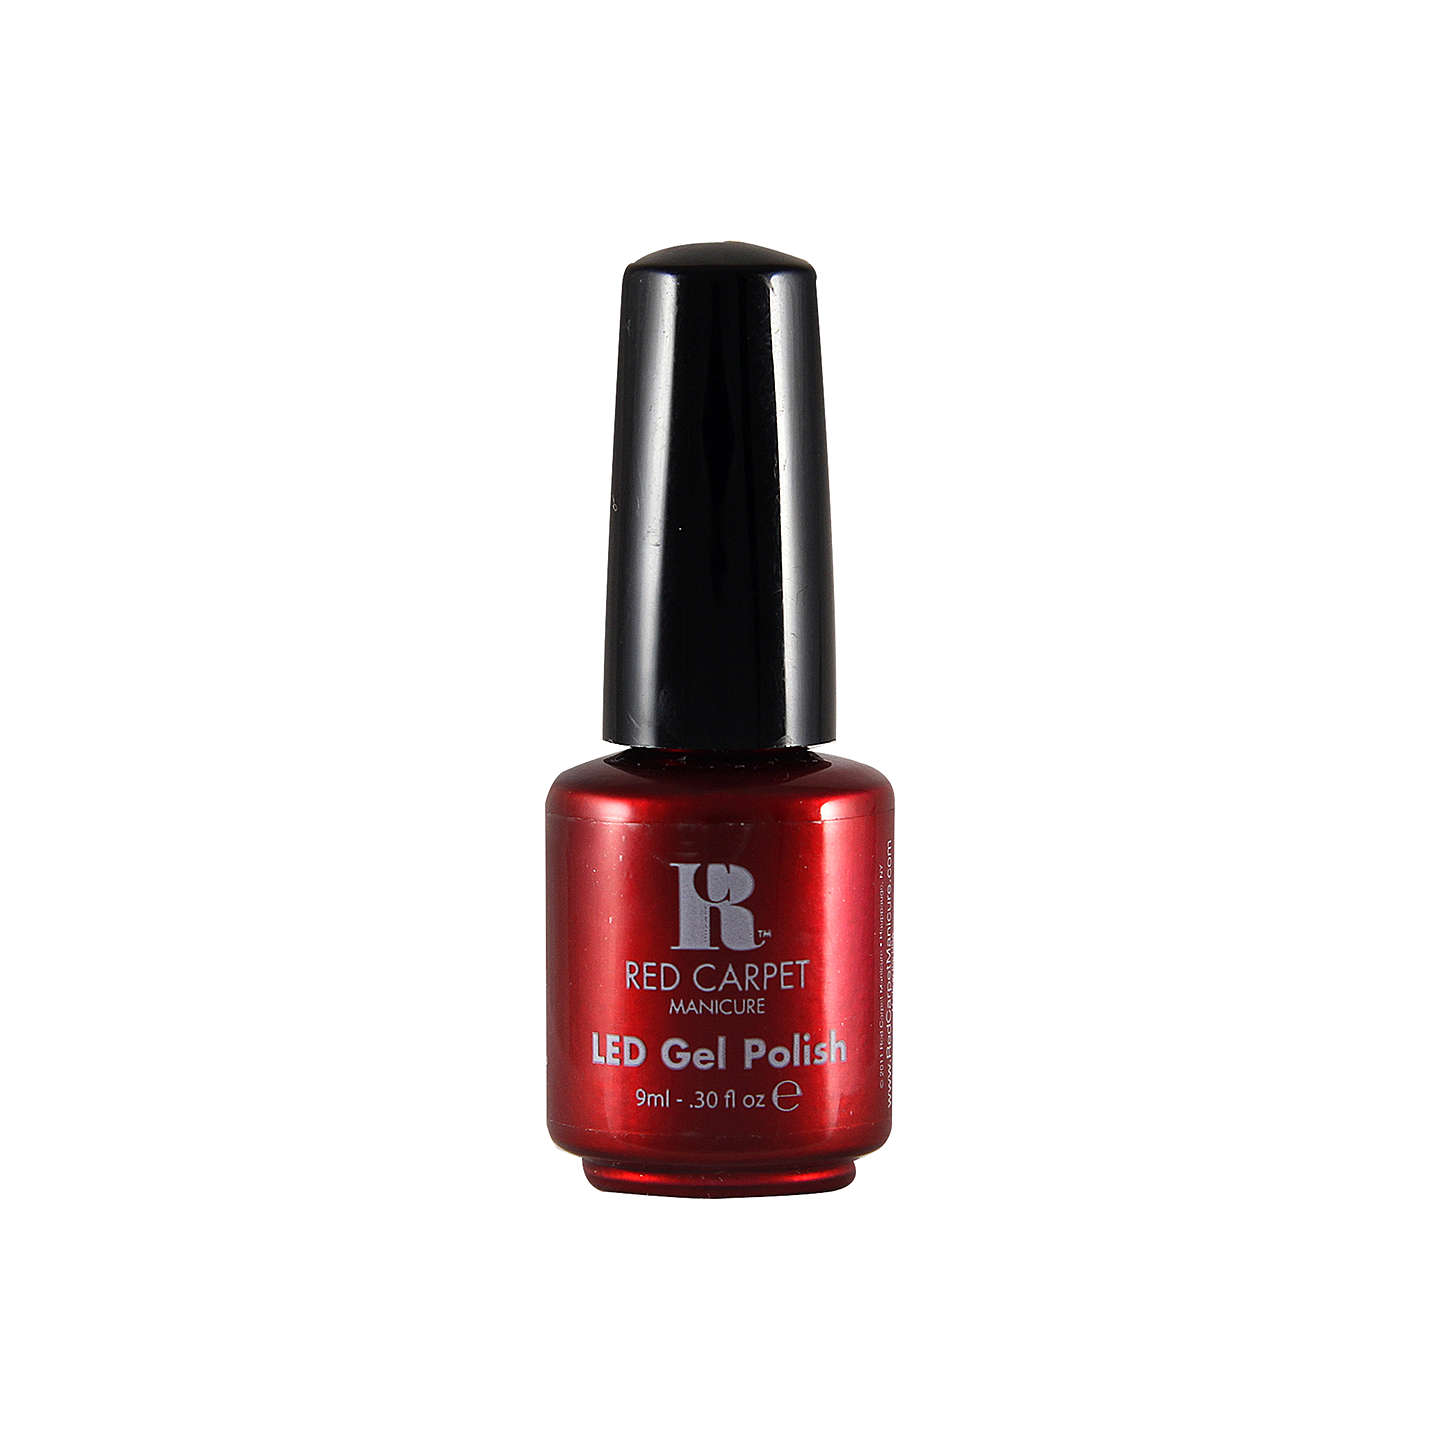 Red Carpet Manicure LED Gel Nail Polish, 9ml at John Lewis